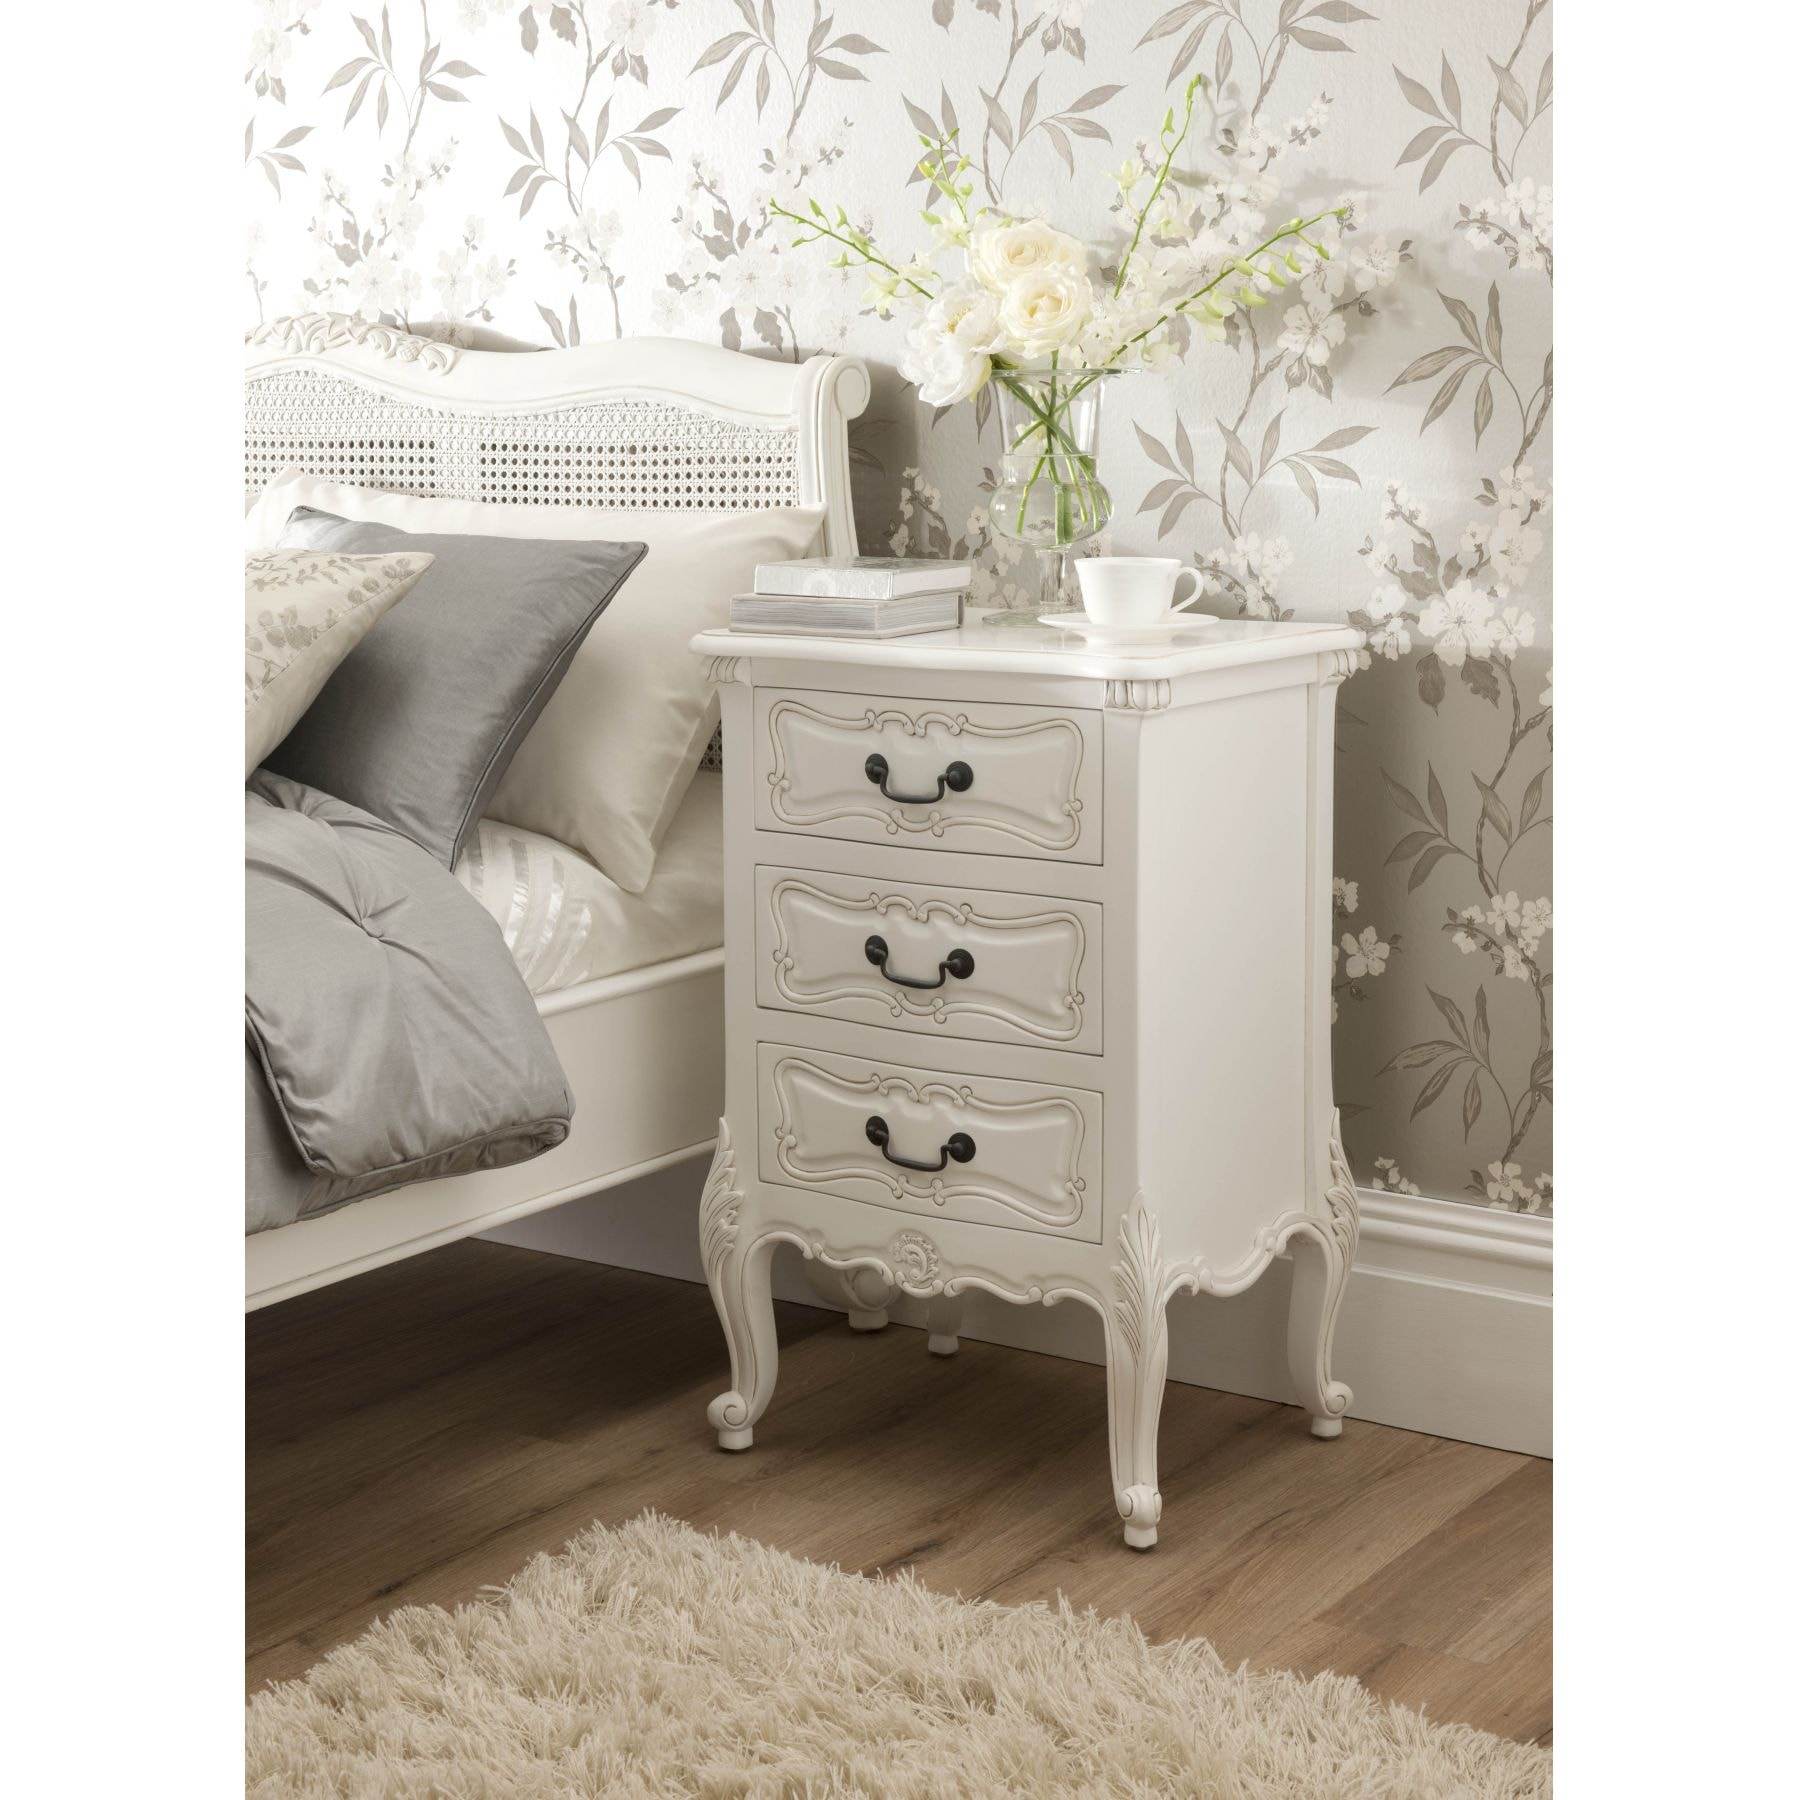 La Rochelle Bundle Deal #11 - French Furniture from Homesdirect 365 UK